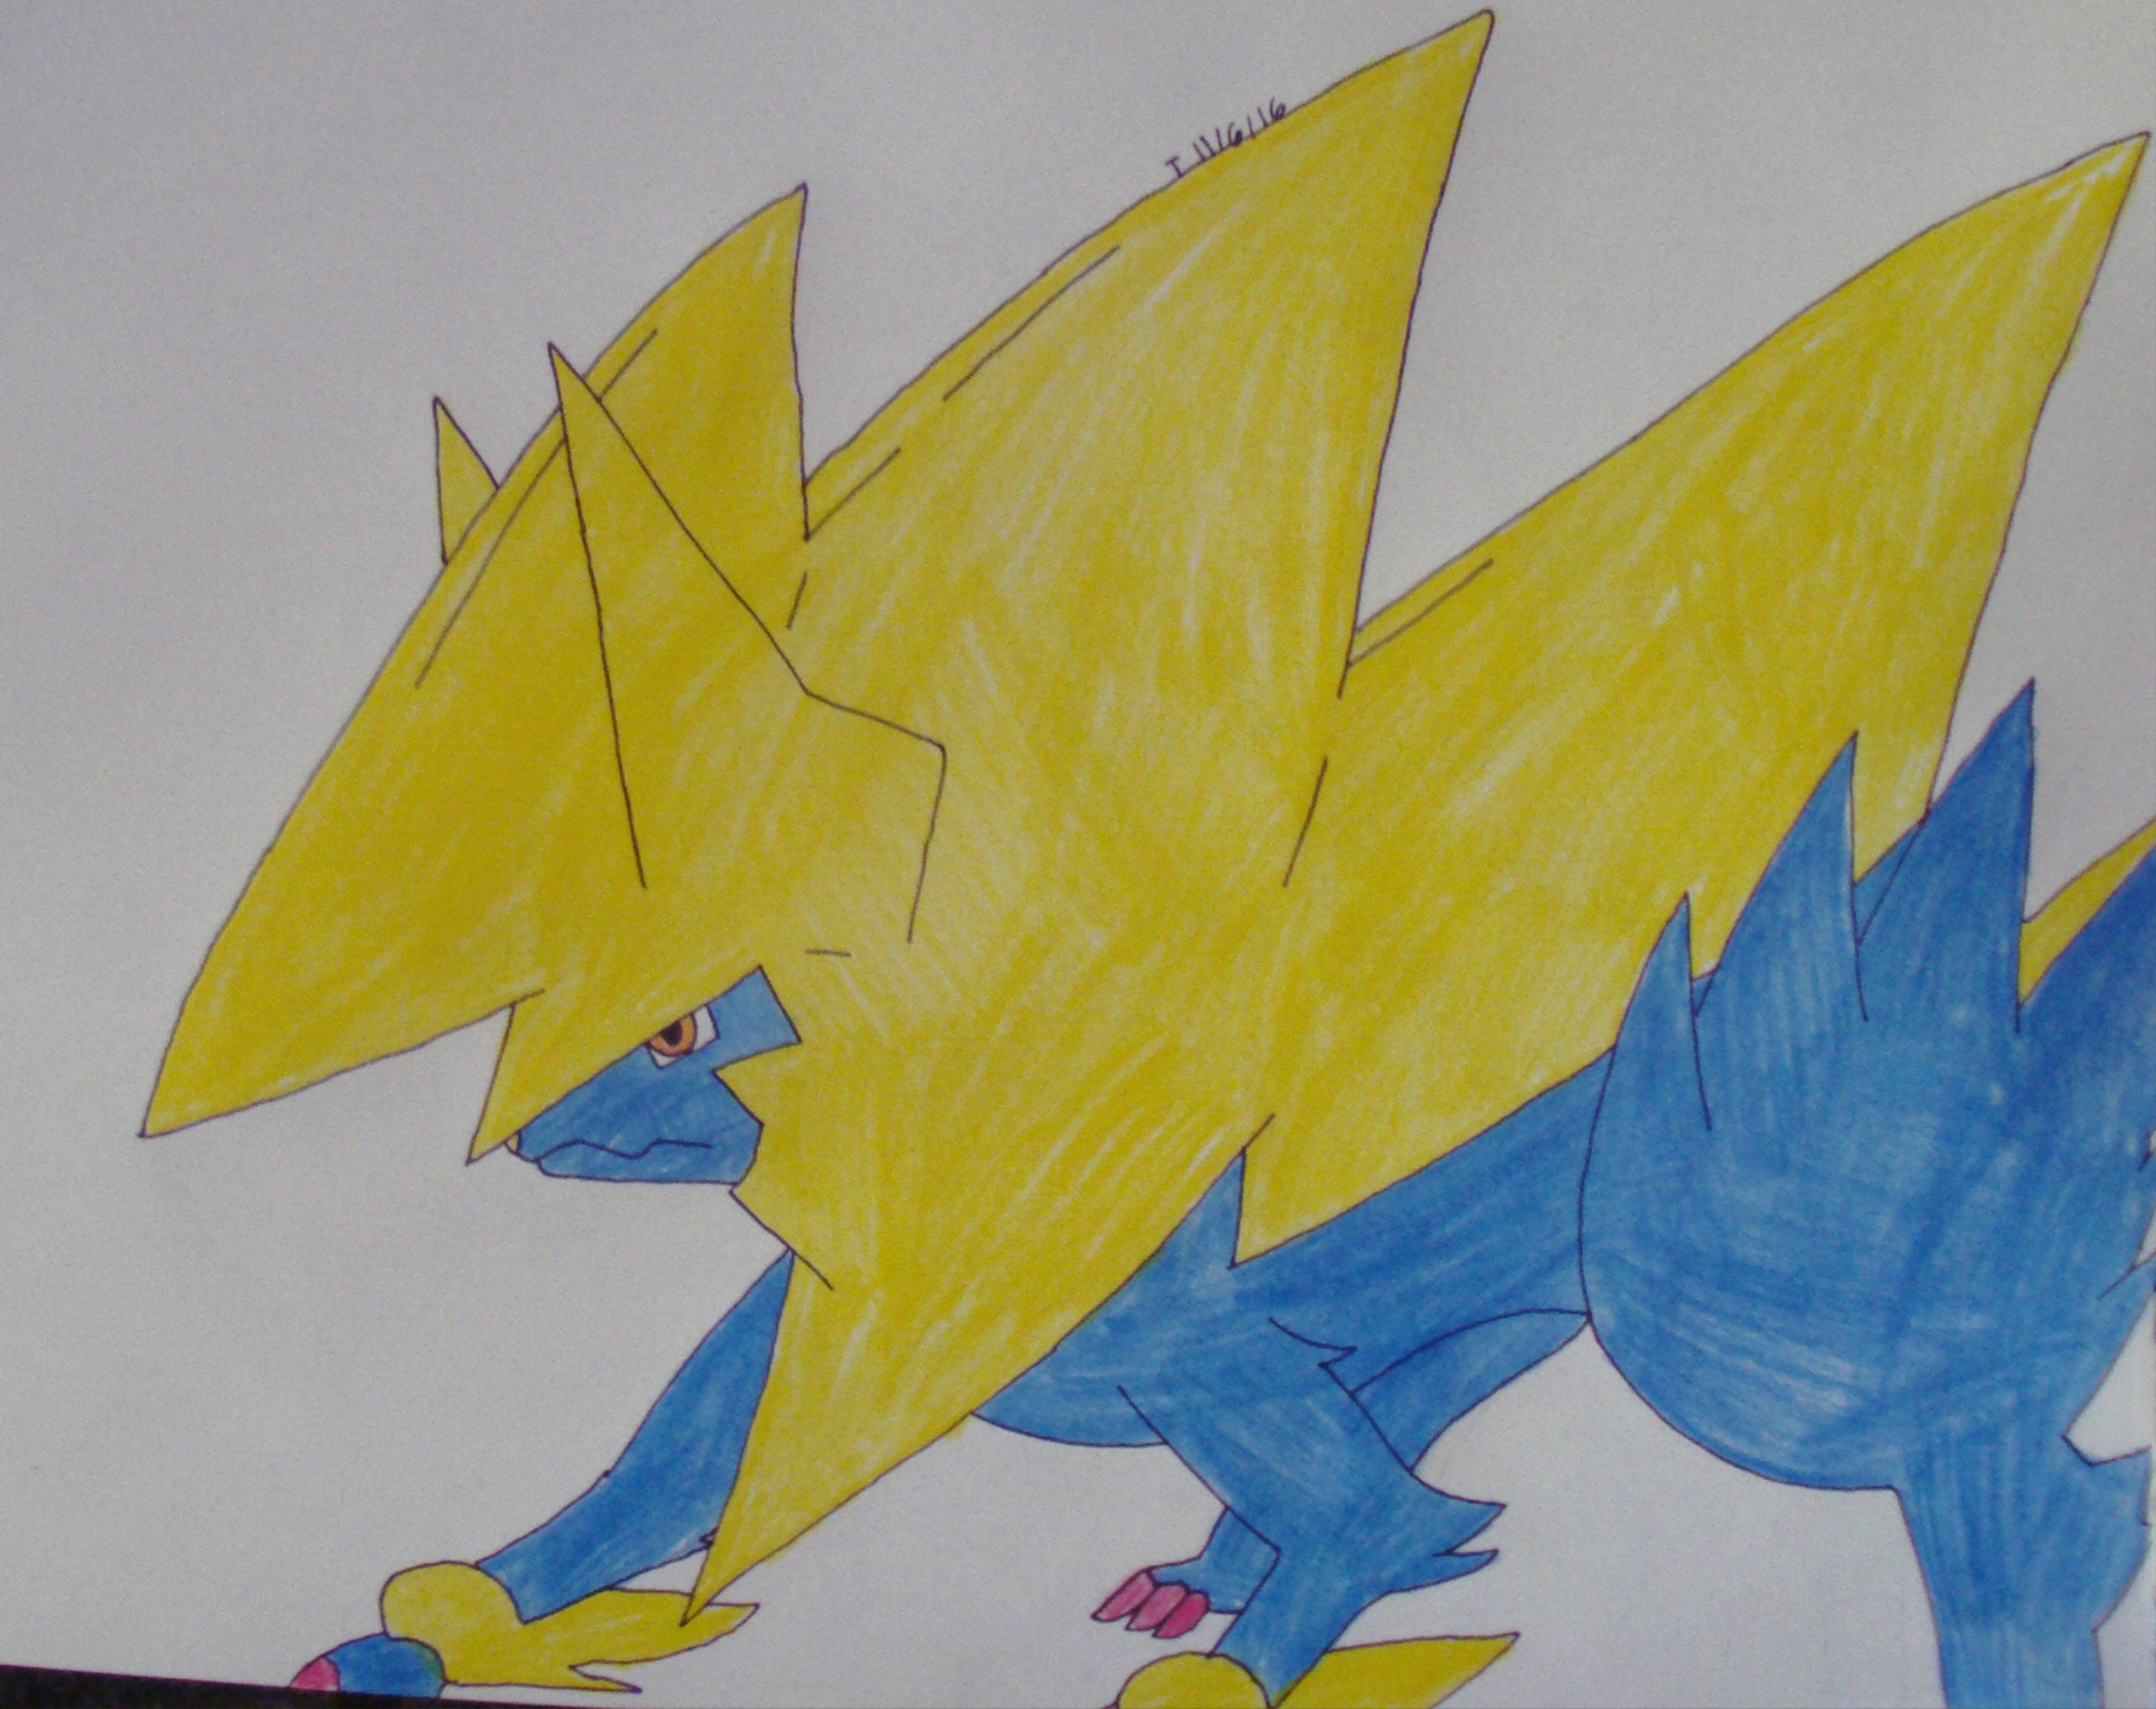 manectric mega evolution by mewmewsailorscout on deviantart